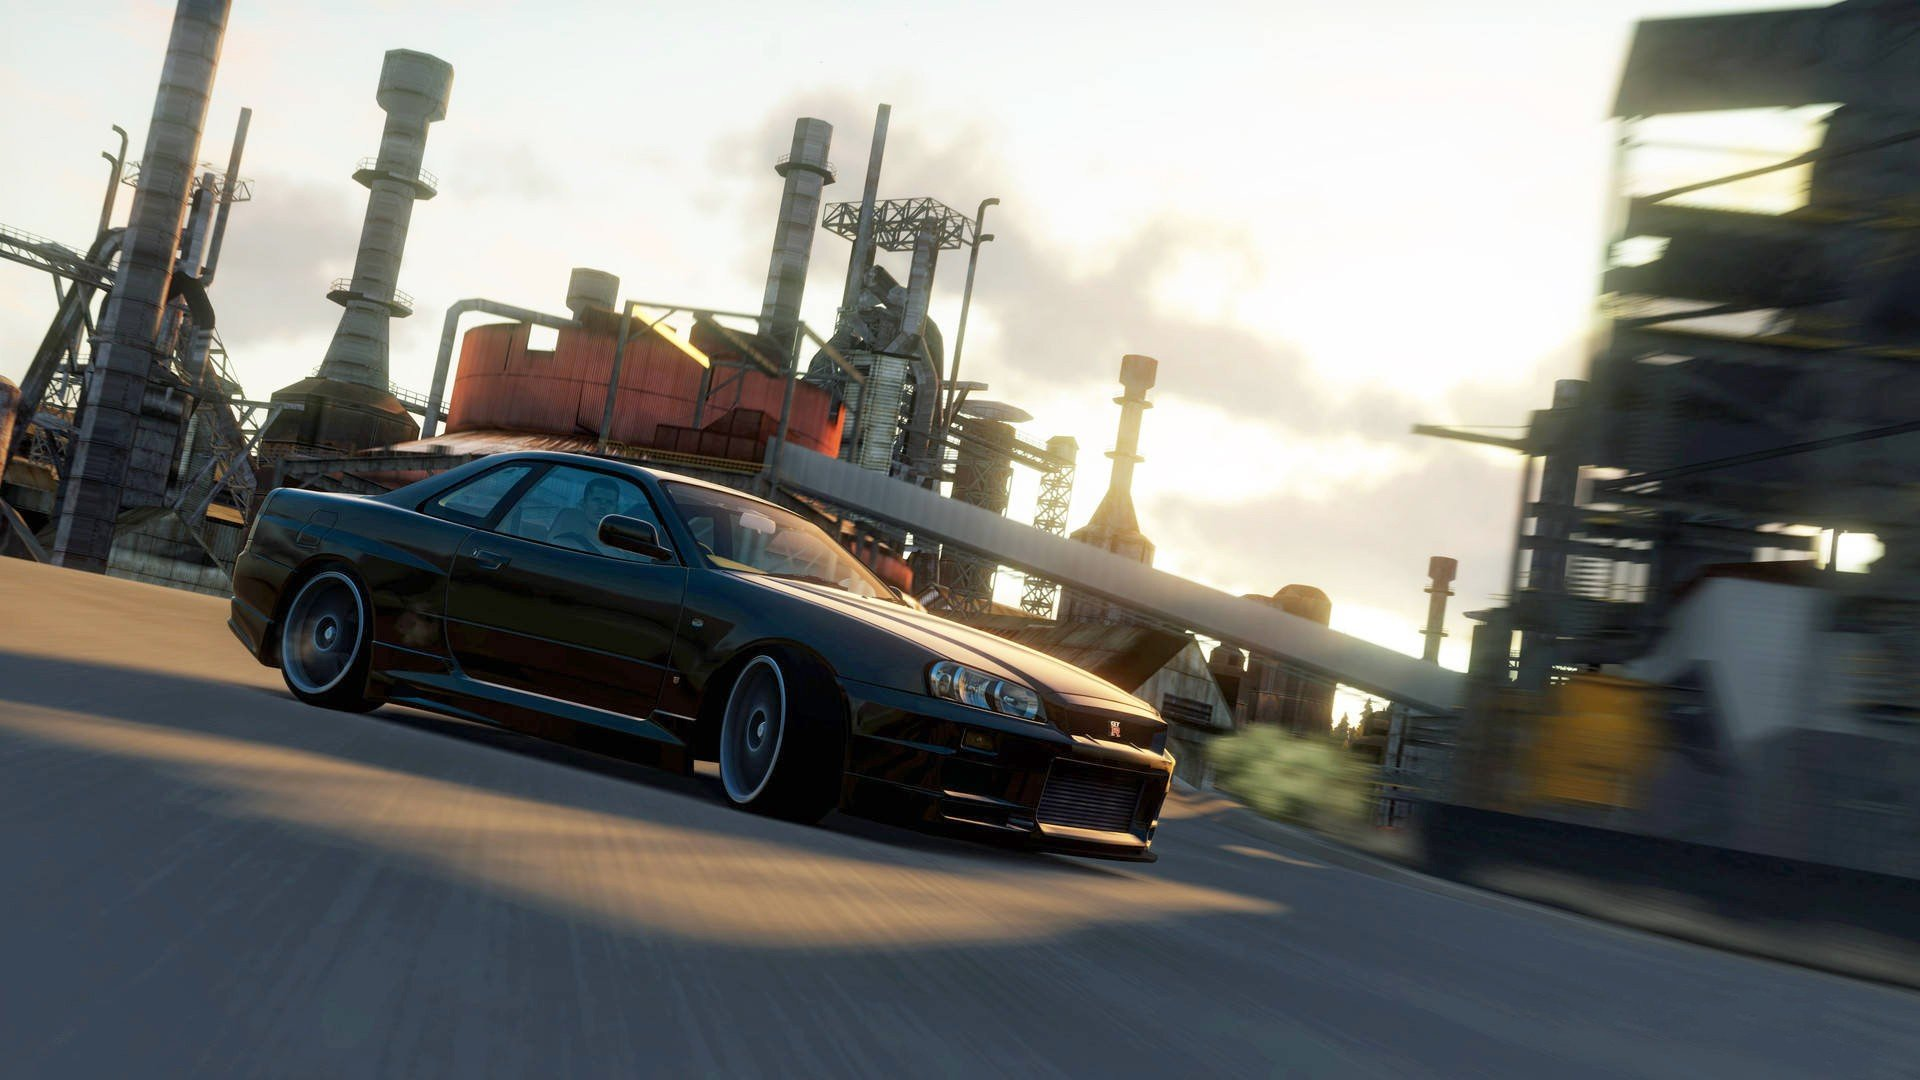 1920x1080 Cars Wallpaper Video Games Cars Xbox 360 Nissan Skyline R34 Gt R Forza